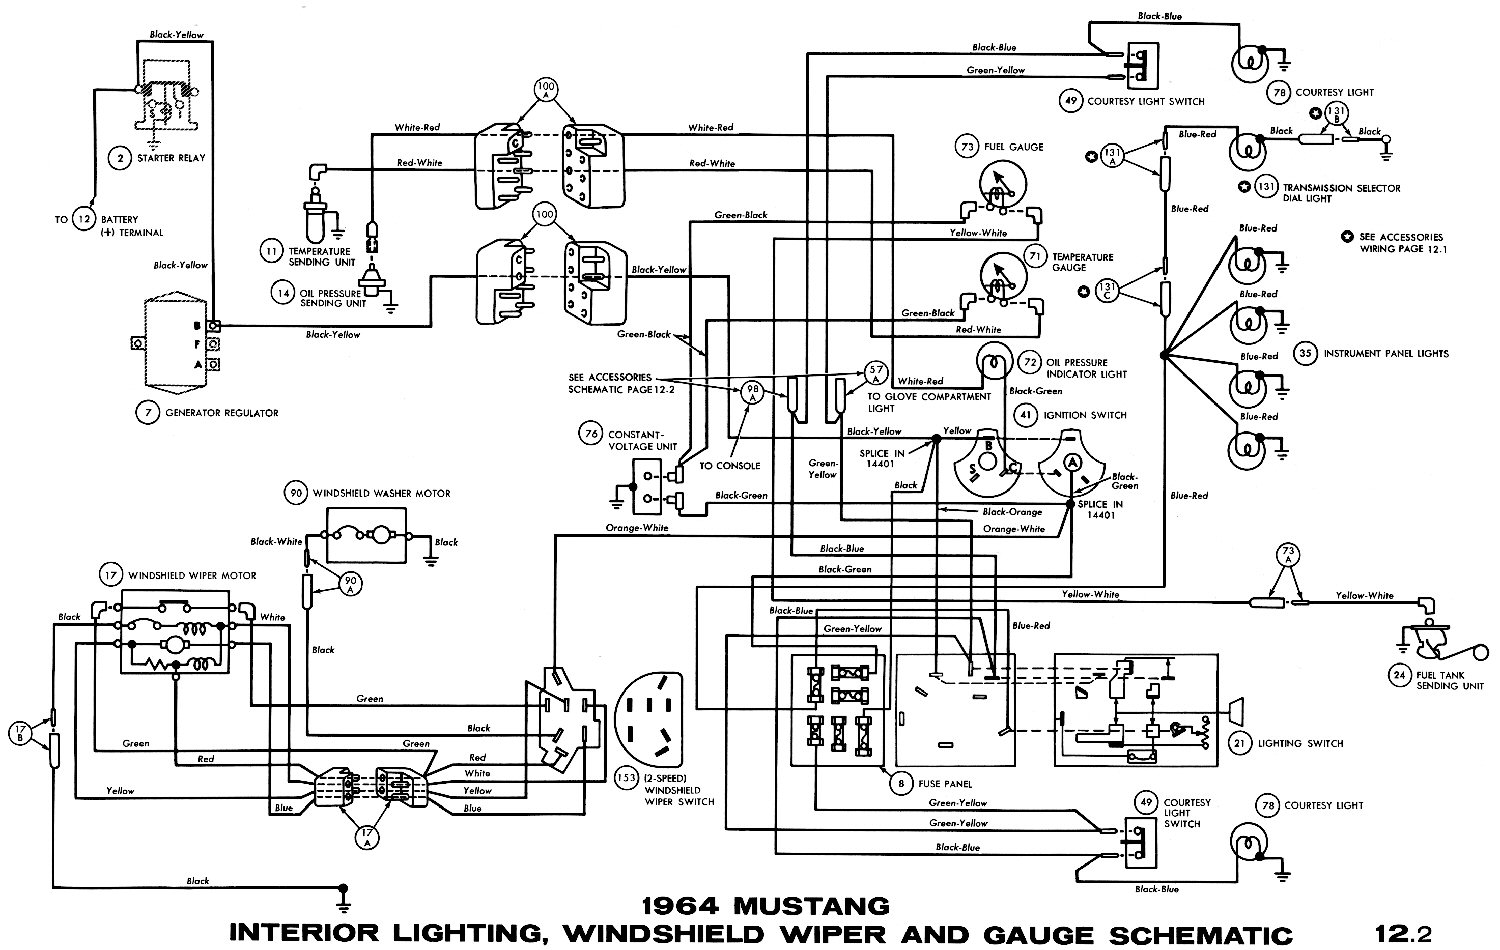 1964k wiring diagram for 1970 ford mustang readingrat net 1966 mustang headlight wiring diagram at n-0.co